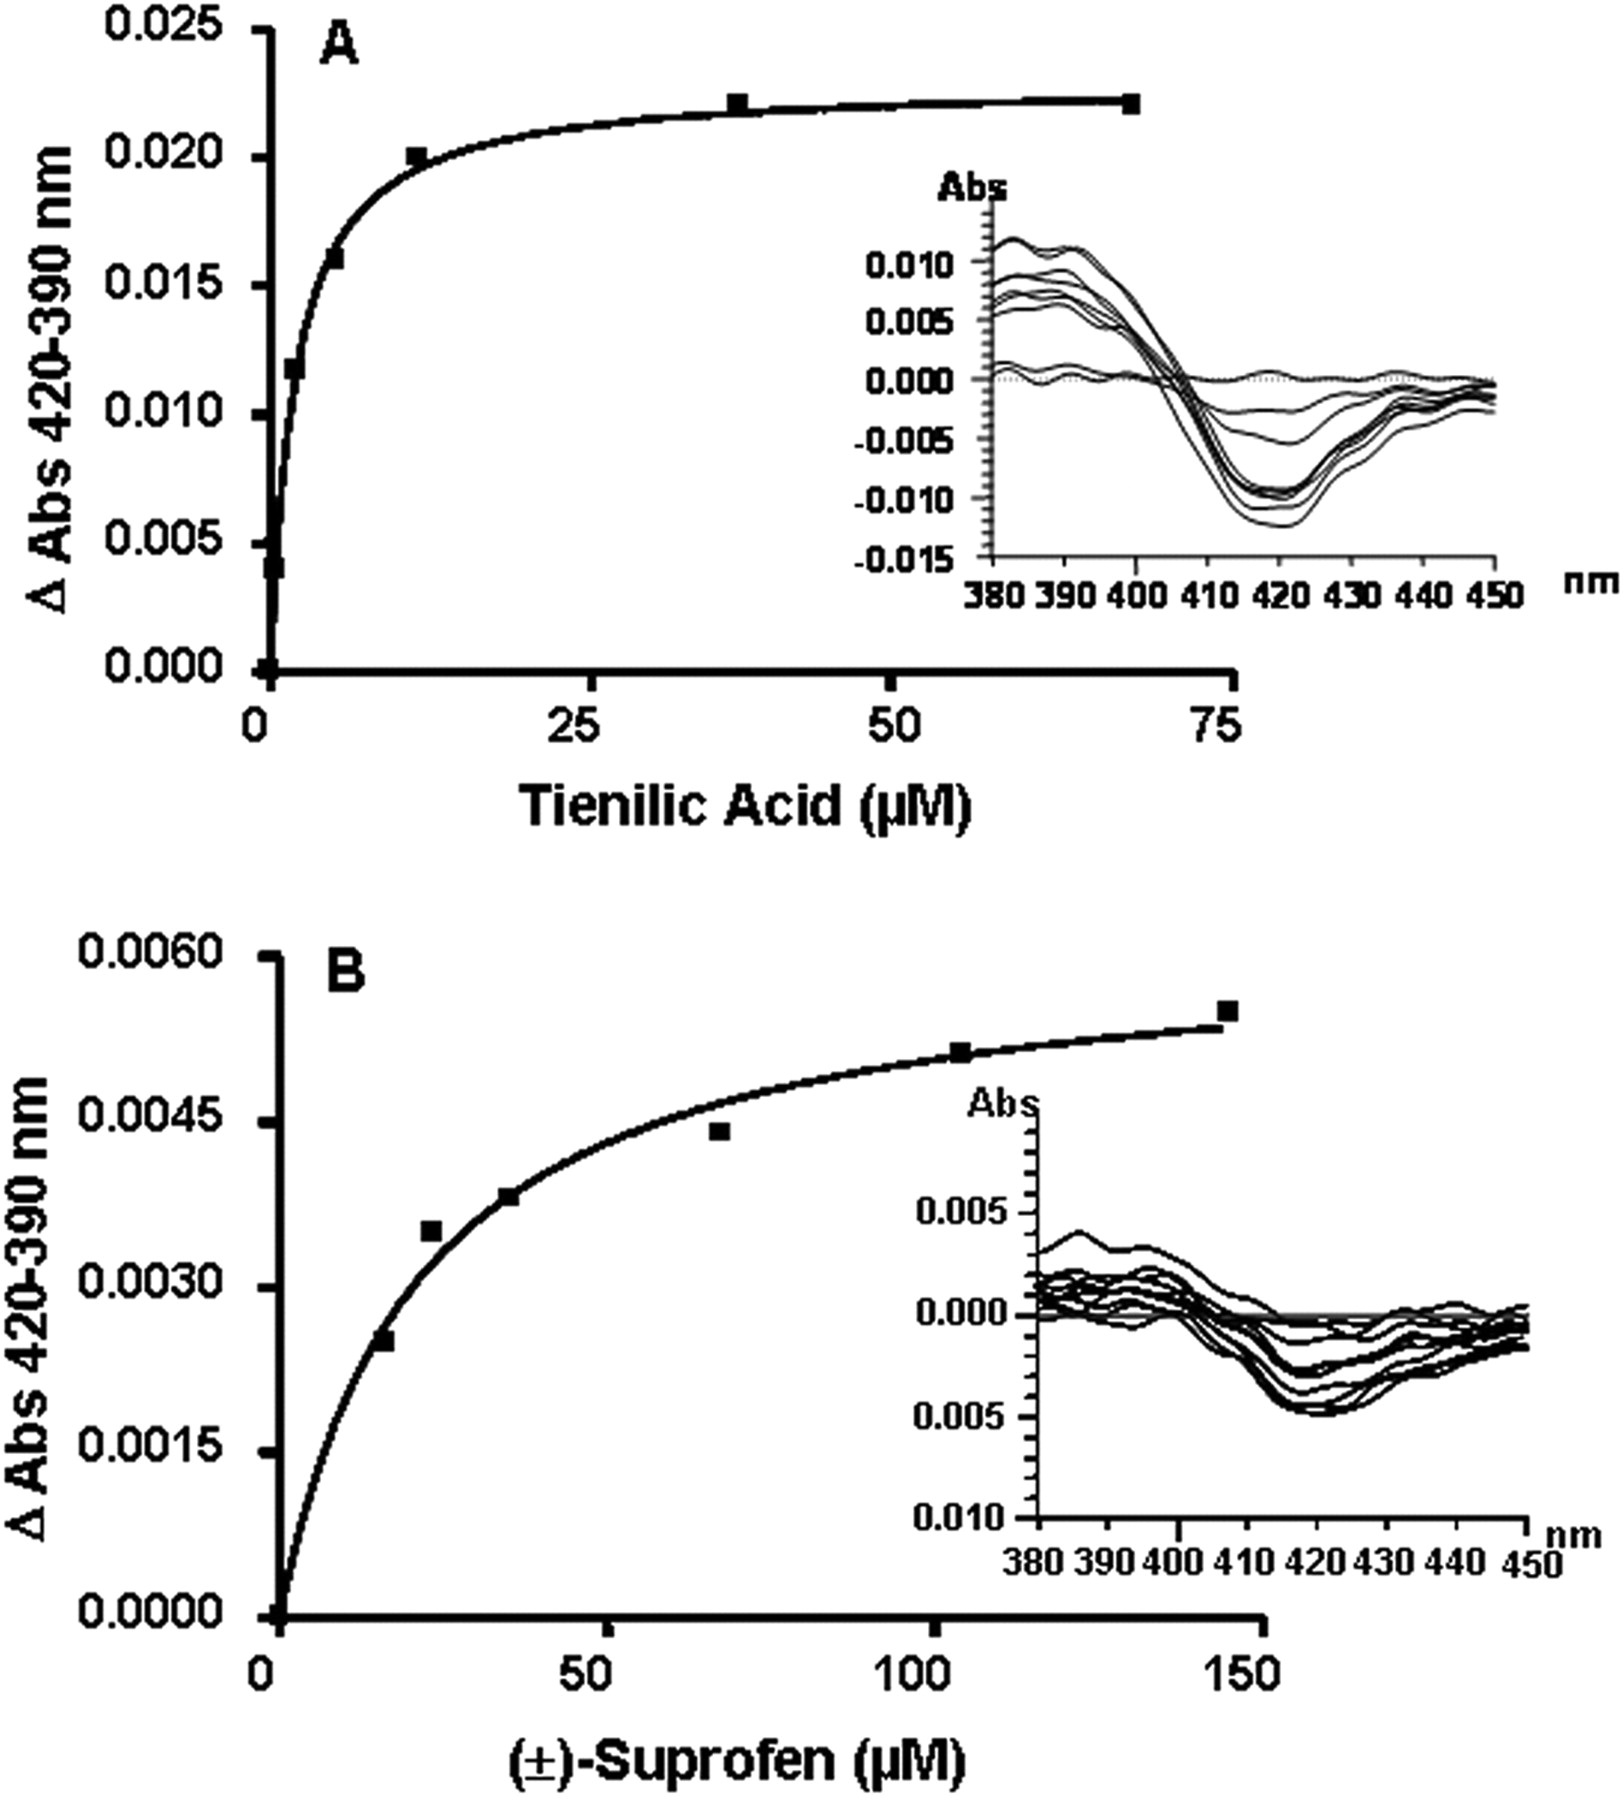 Mechanism Based Inactivation Of Cytochrome P450 2c9 By Tienilic Acid And Suprofen A